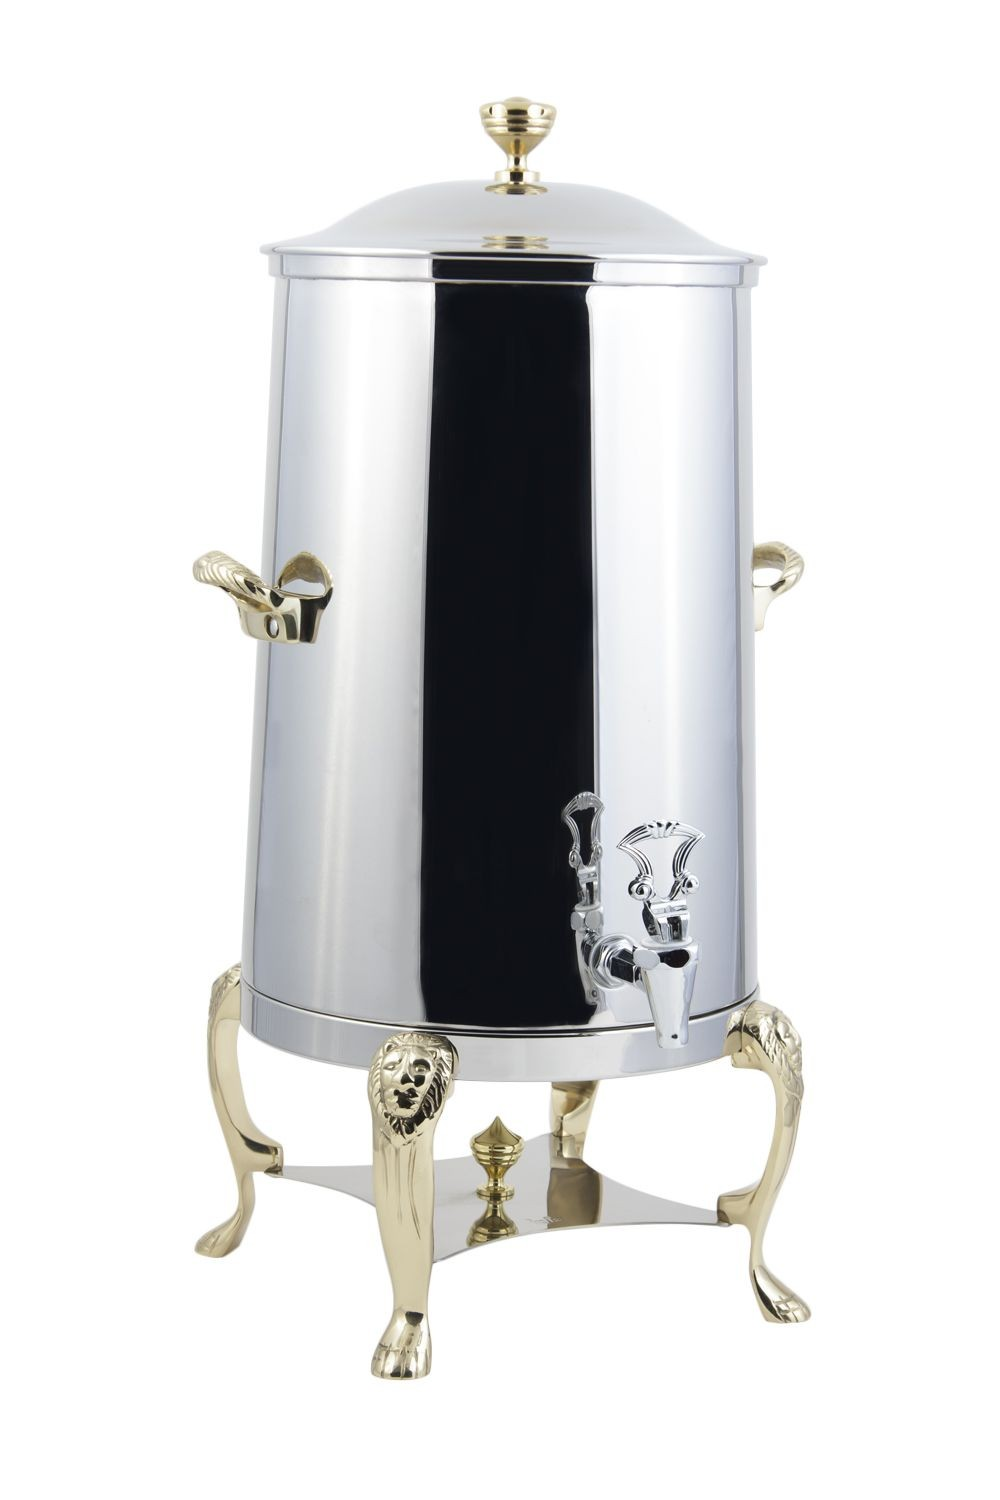 Bon Chef 48003 Lion Insulated Coffee Urn with Brass Trim, 3 Gallon